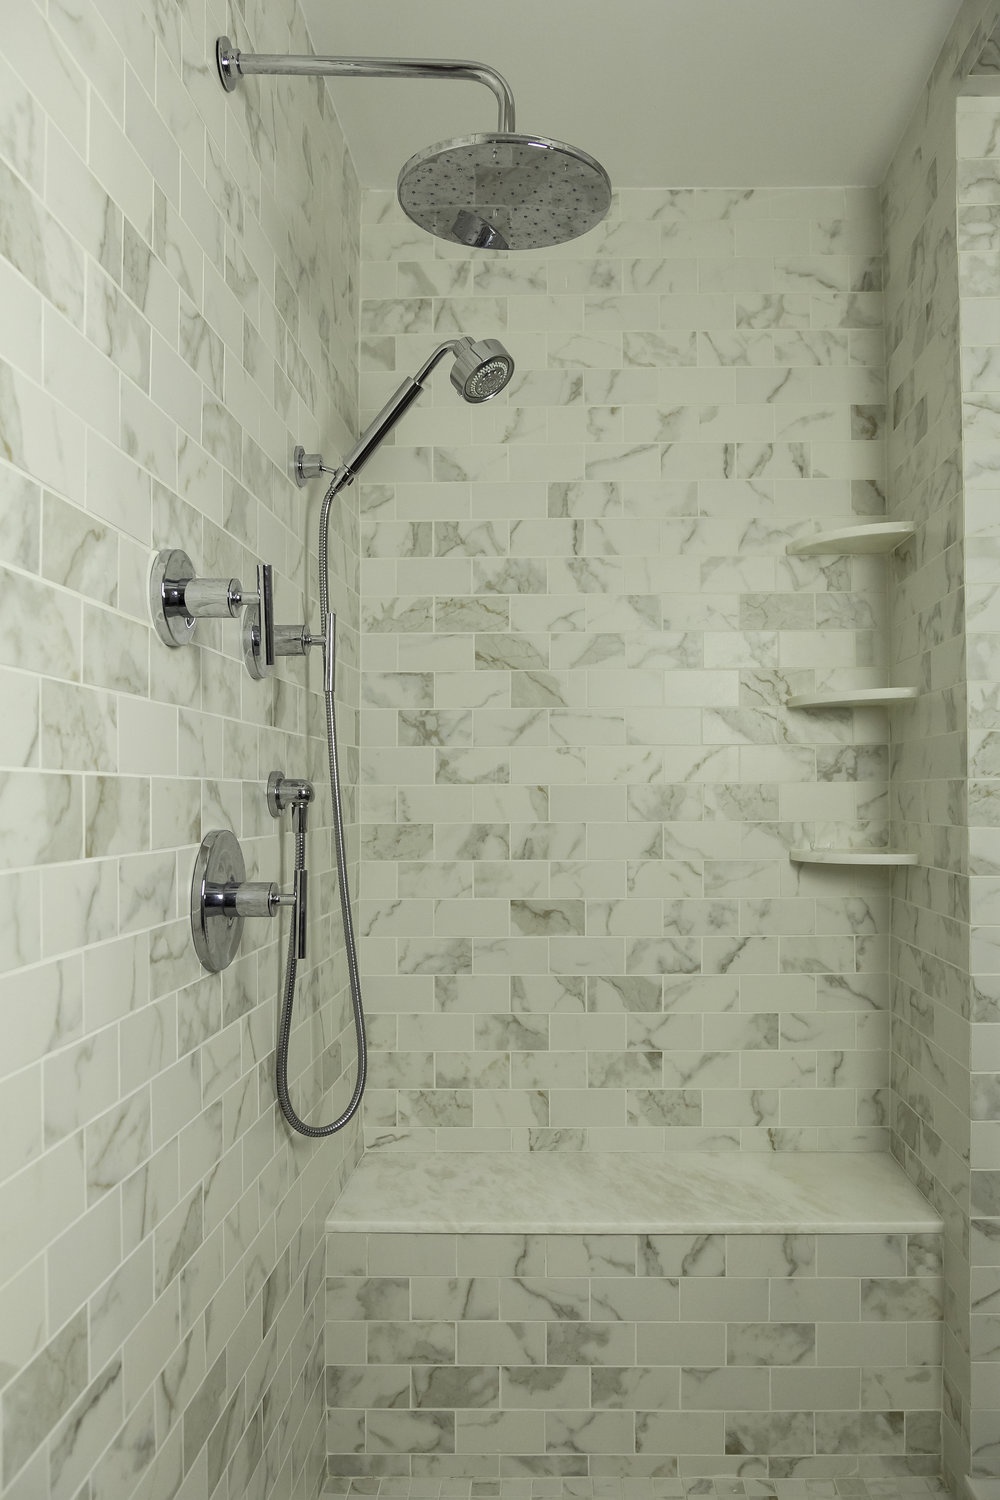 Tile walled standing shower with articulating shower head